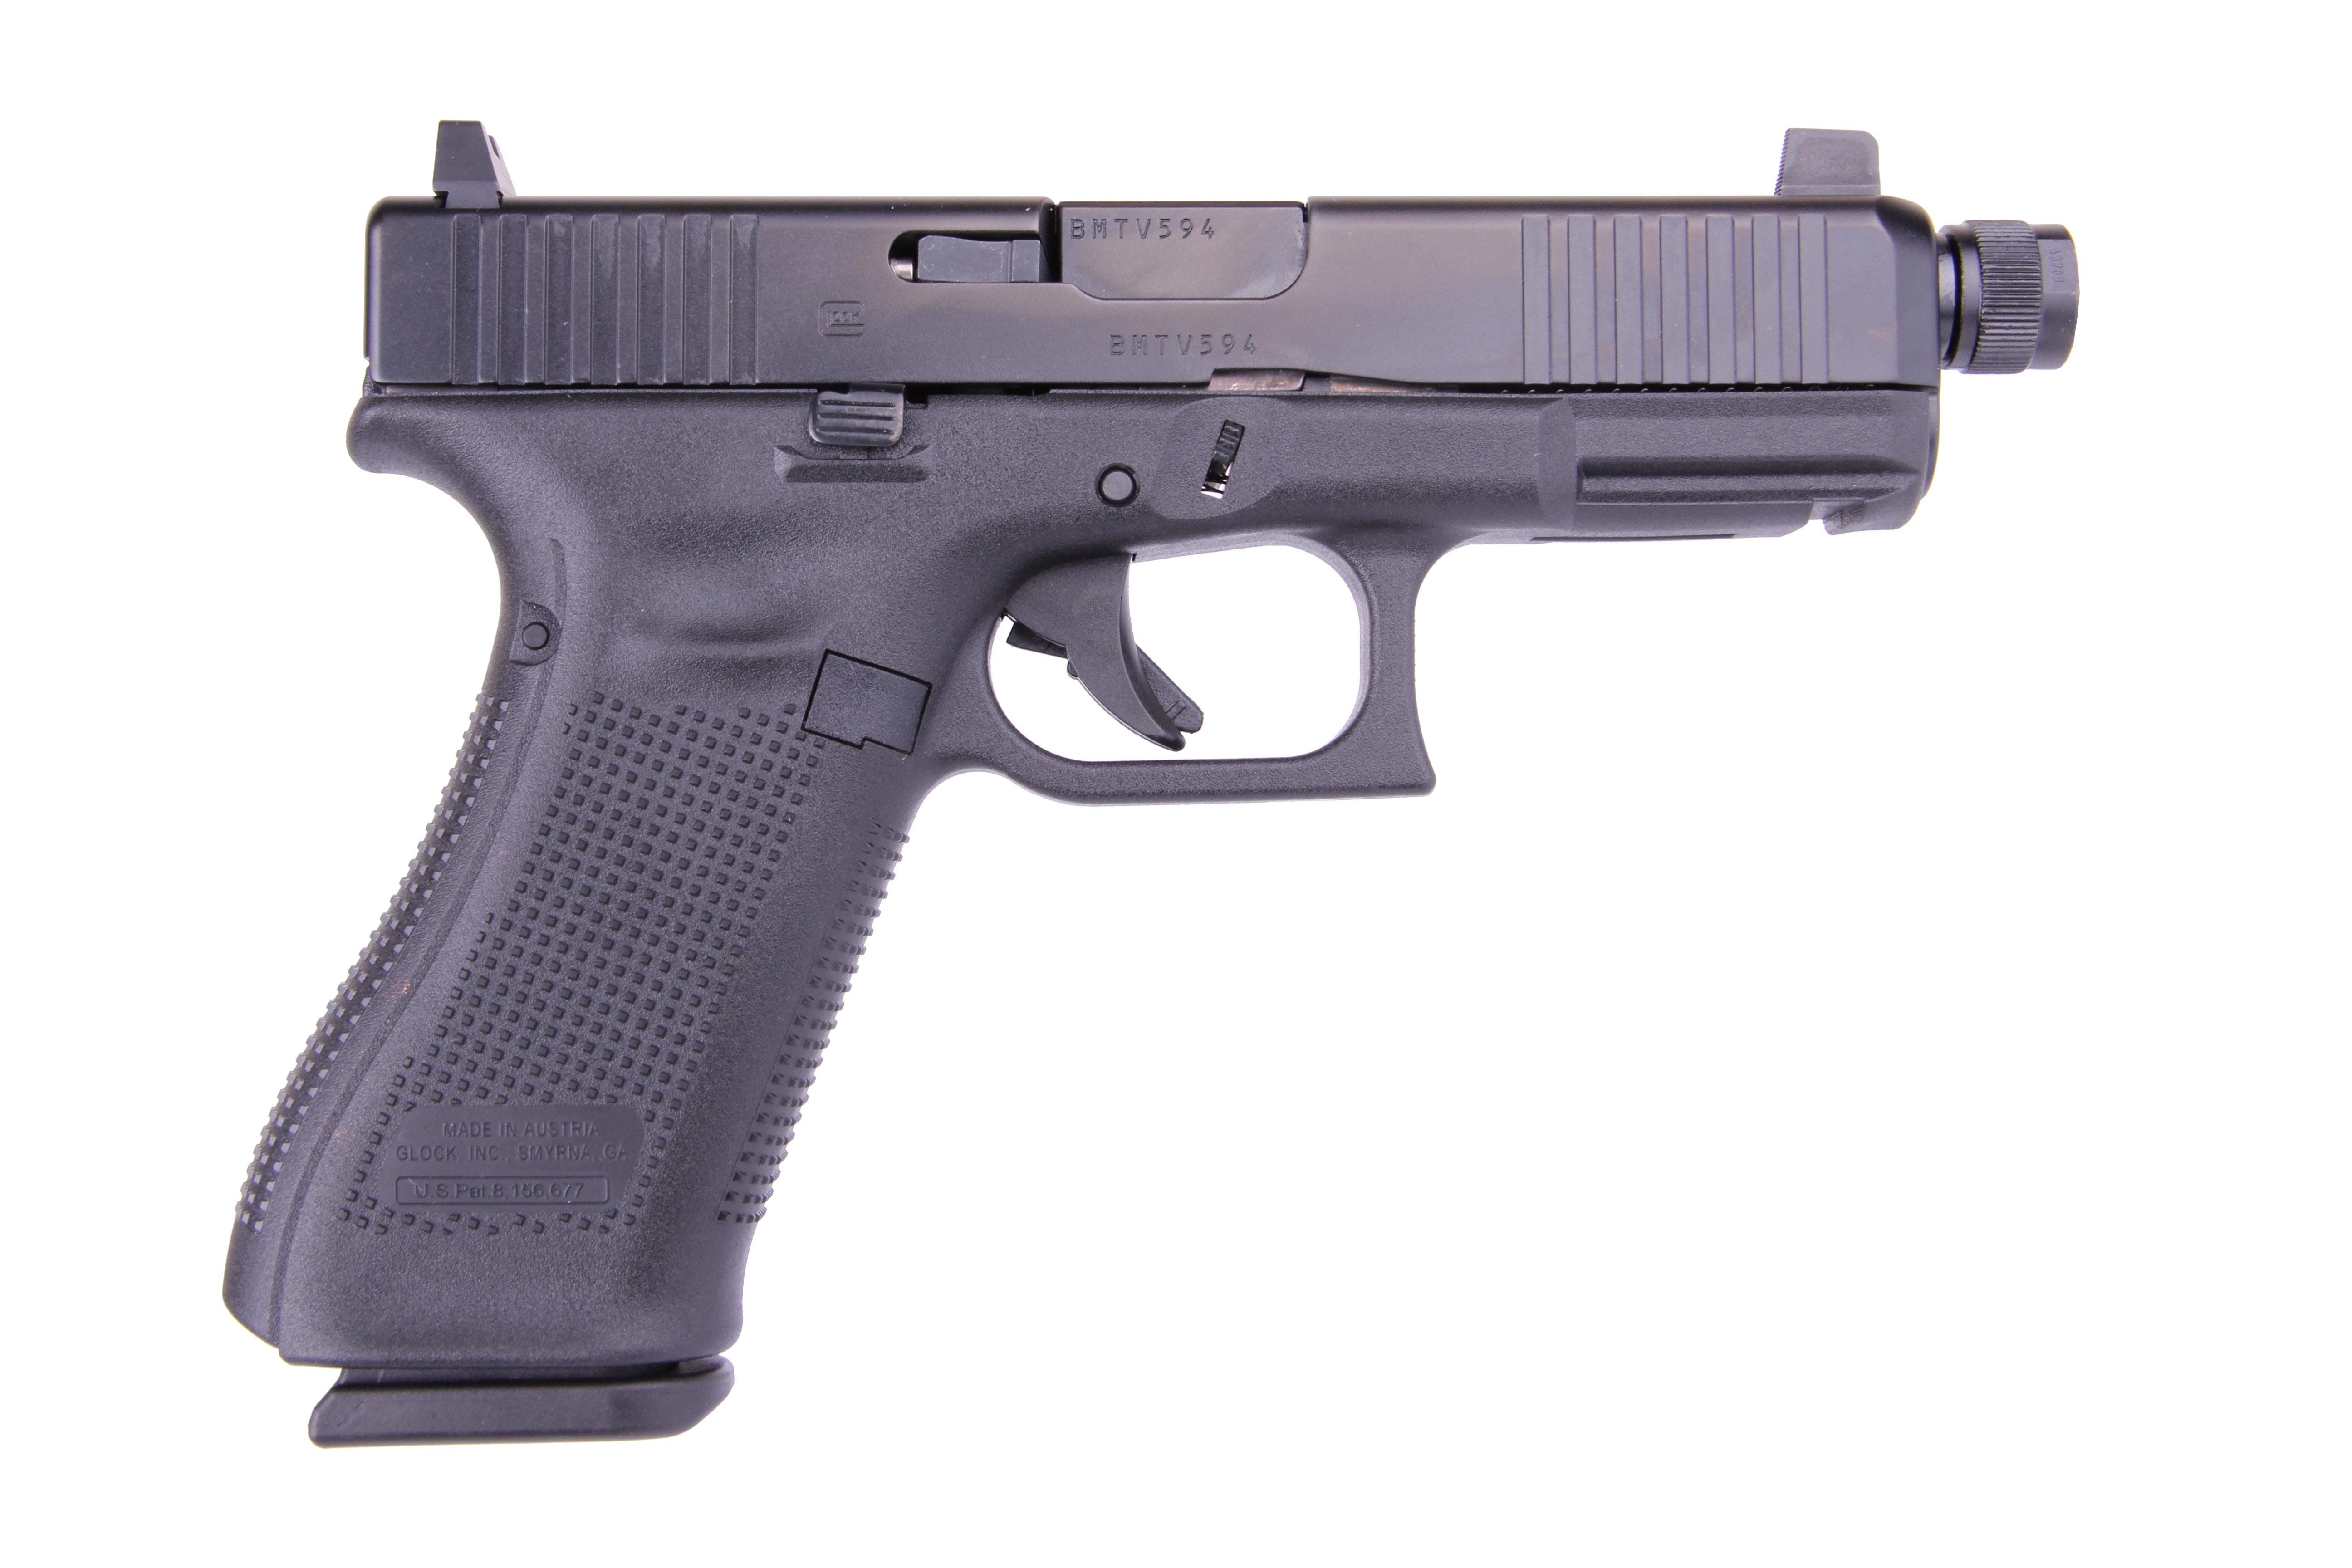 G45 G5 9MM 17+1 4.0 THREAD FS - 3-17RD MAGS | FRONT SERRATIONS